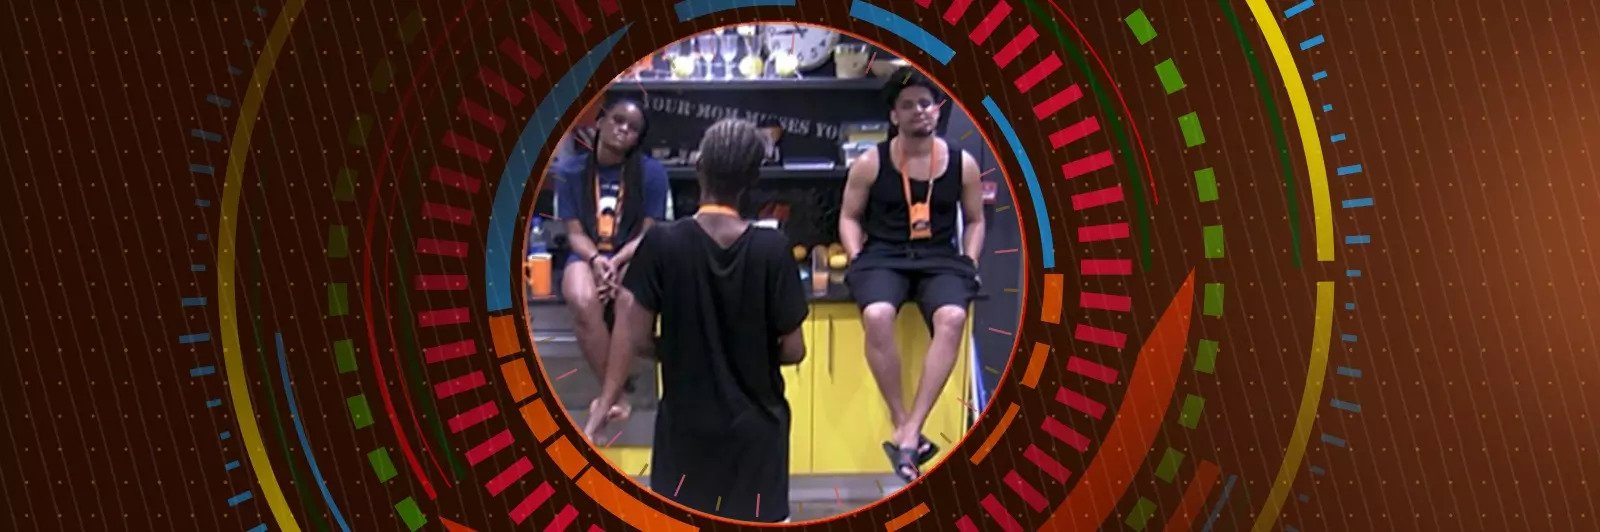 khloe, BBNaija 2018 Day 67: Cee-C and Khloe's Unholy Alliance, Latest Nigeria News, Daily Devotionals & Celebrity Gossips - Chidispalace